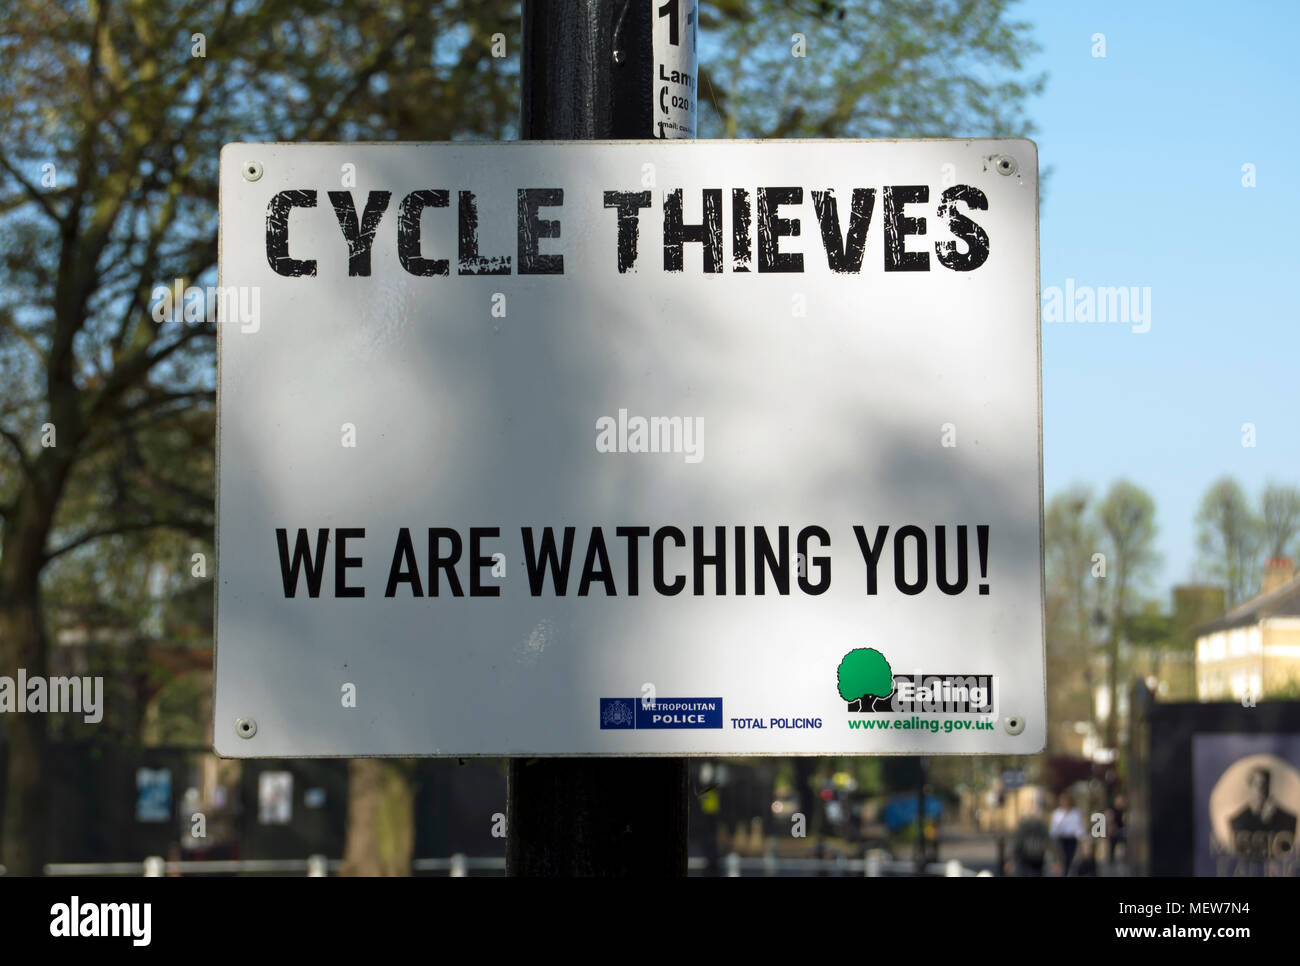 metropolitan police sign warning cycle thieves that they are being watched, ealing, west london, england - Stock Image